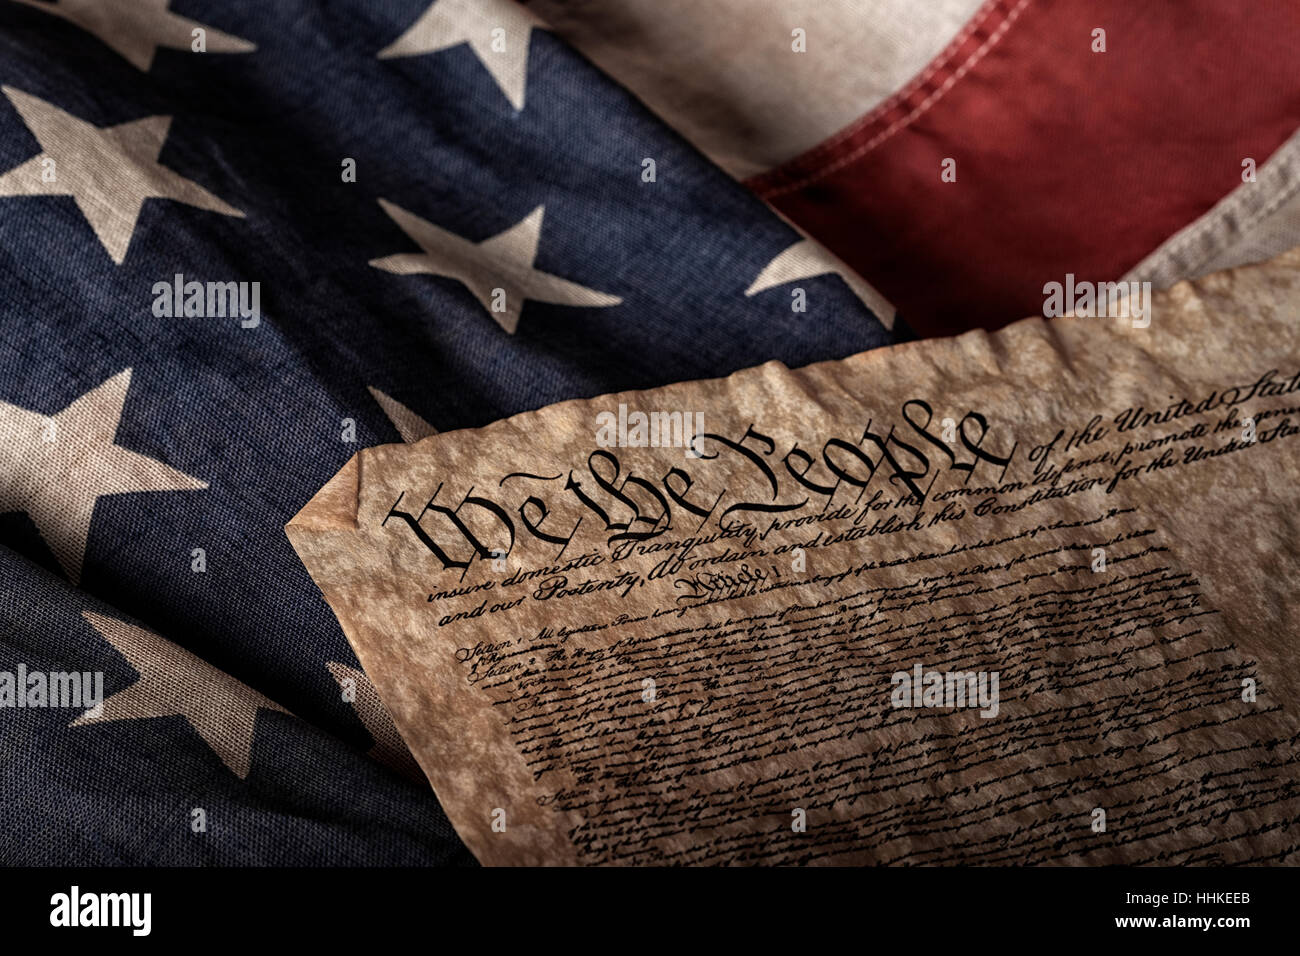 U.S. constitution on an old and worn flag - Stock Image